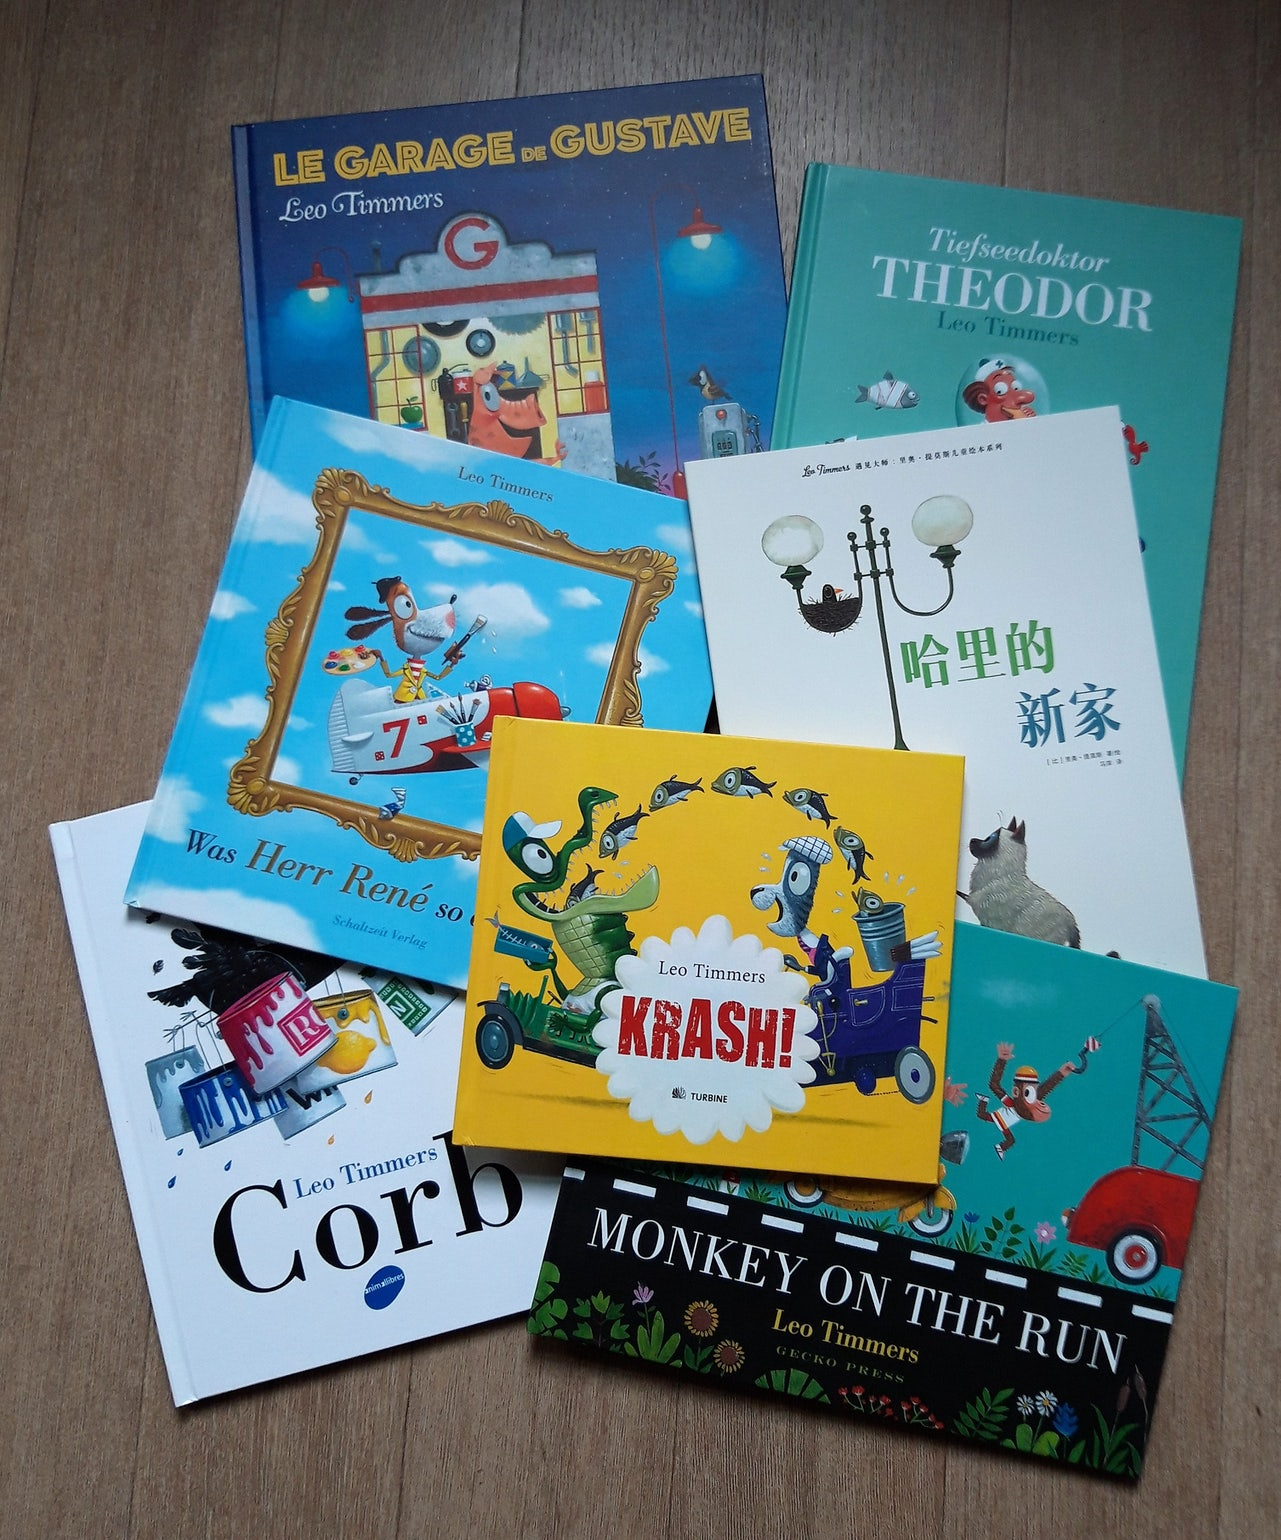 A selection of Leo Timmers' work in translation